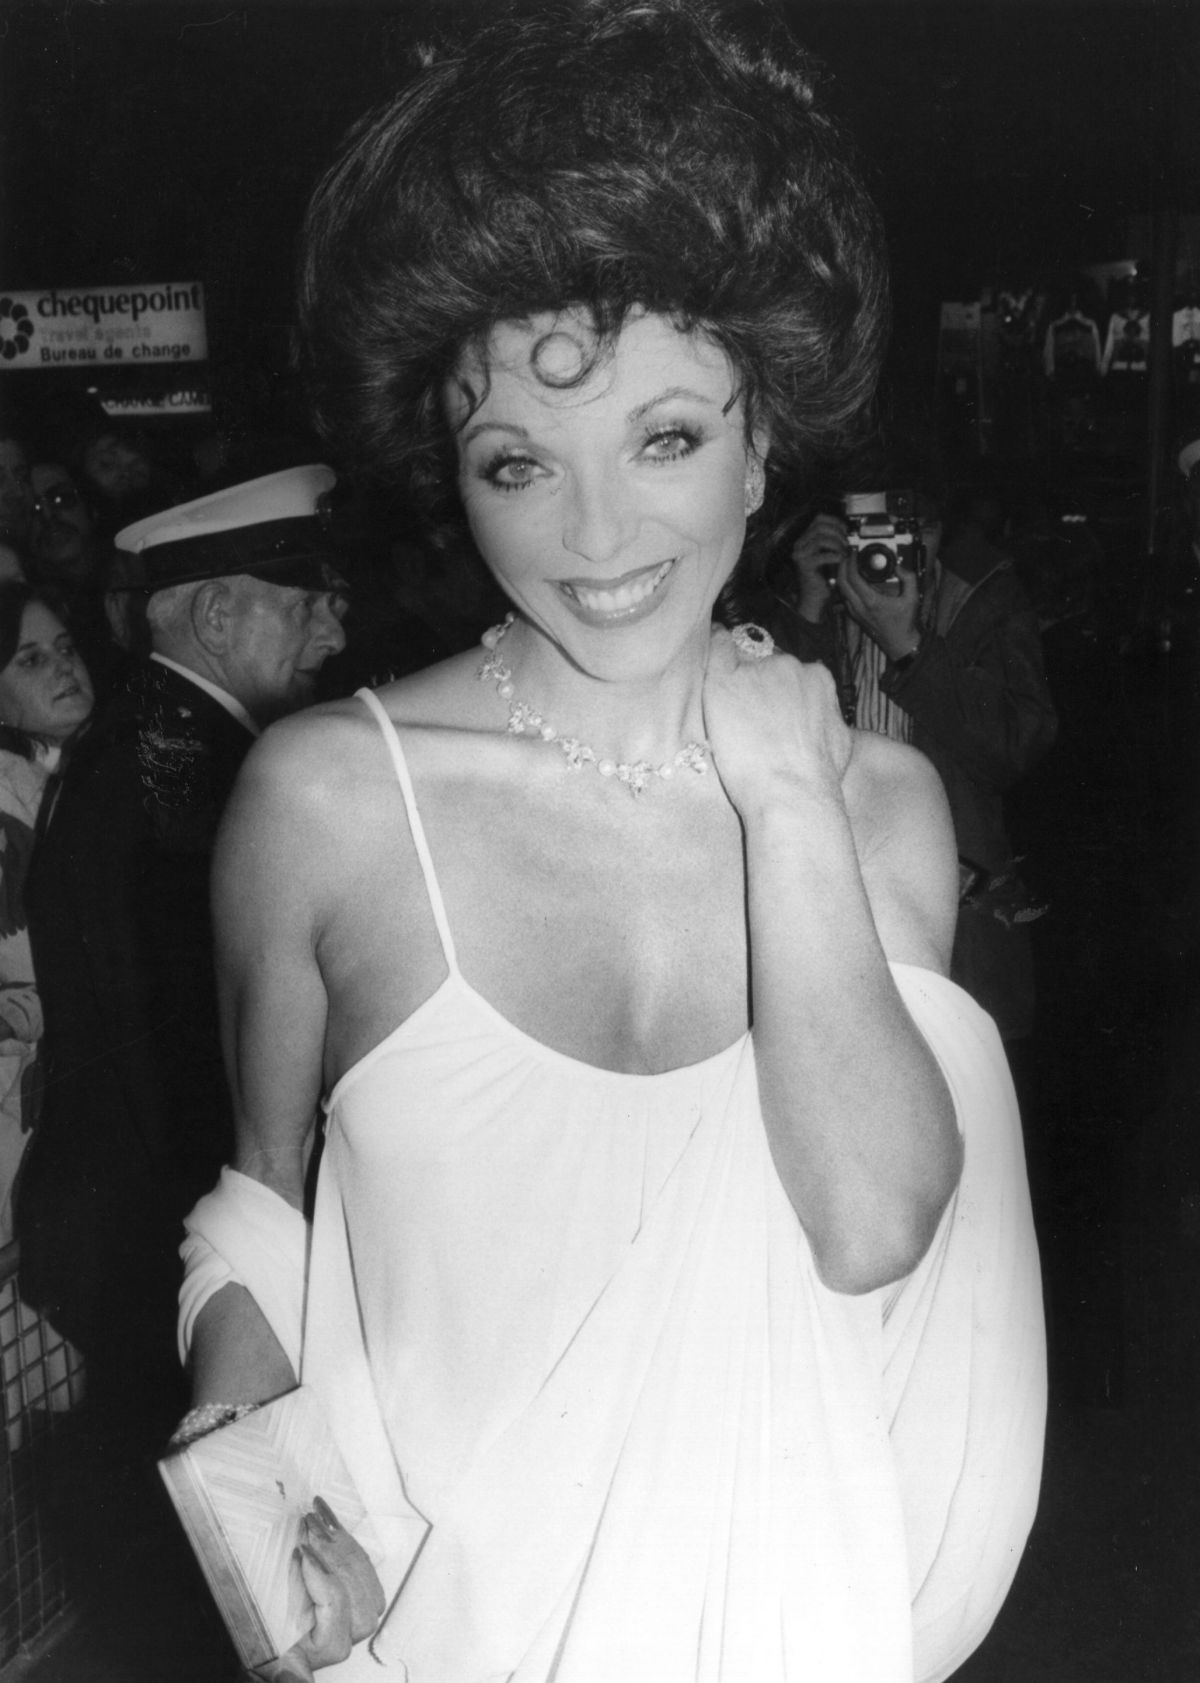 Joan Collins Looking Stunning At The Premiere Of The Stud 1978